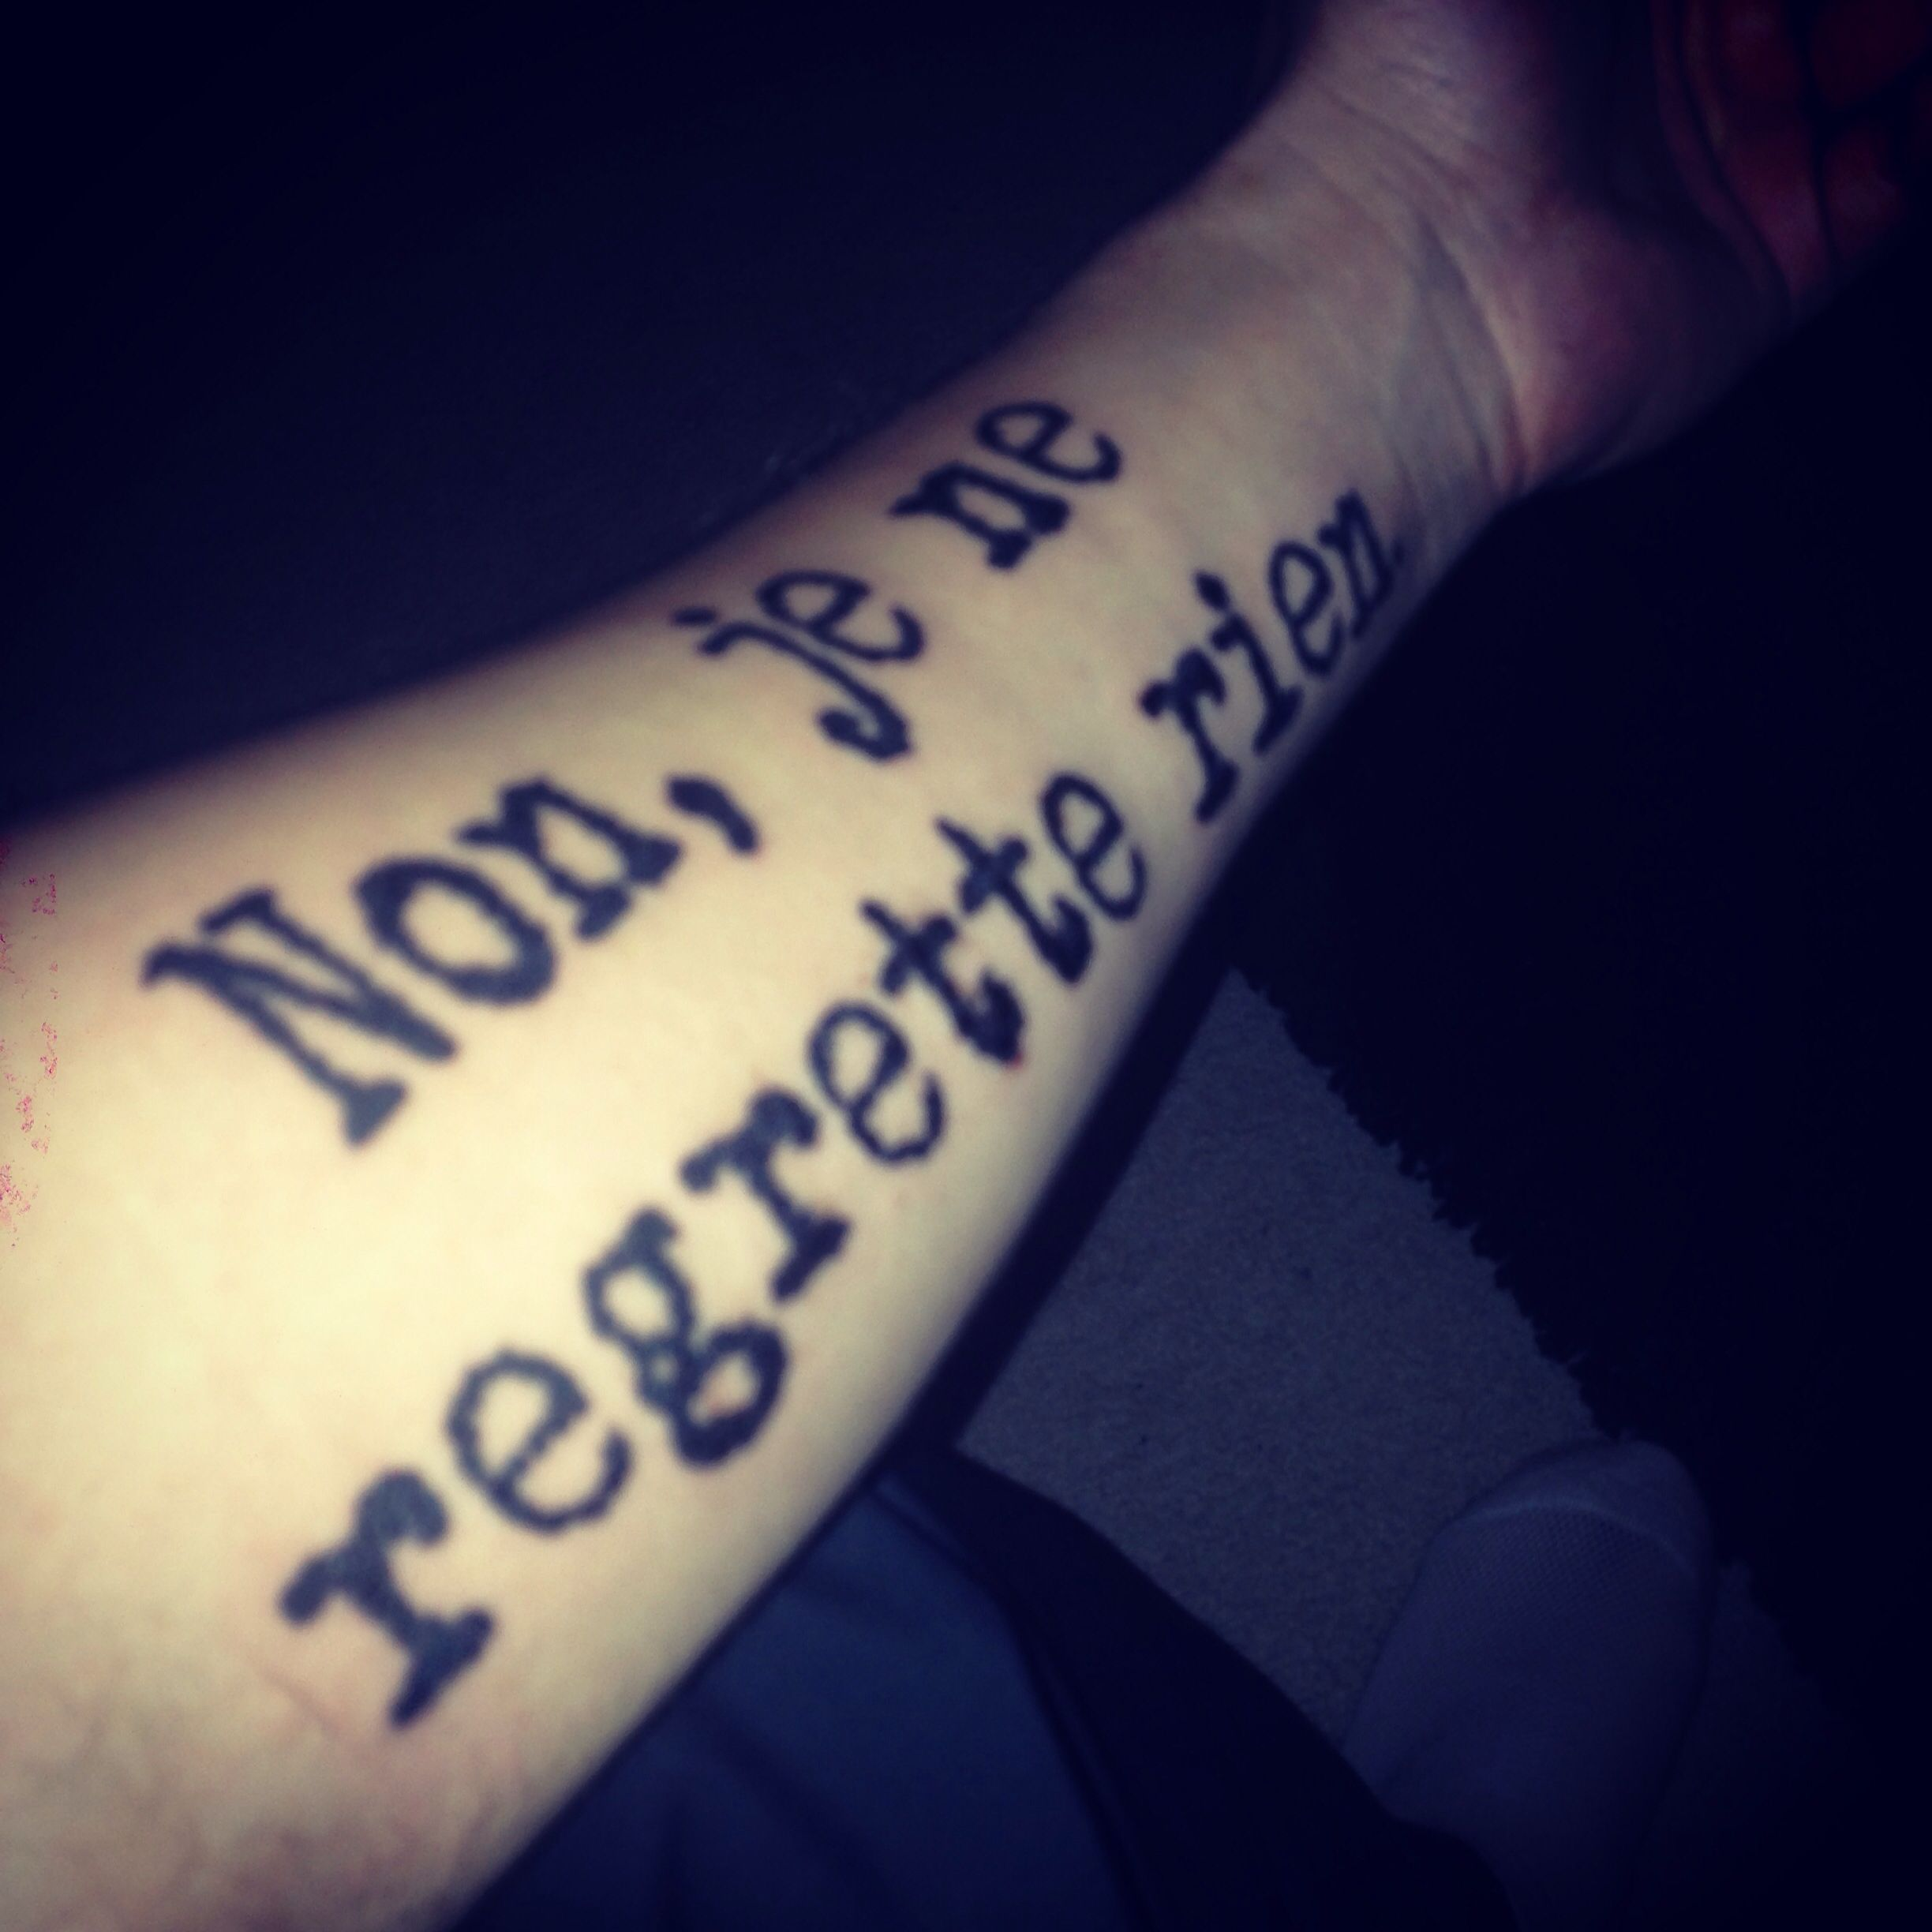 French Tattoo Je Ne Regrette Rien No Regrets: #tattoo #tattoos #forearm ... Non, Je Ne Regrette Rien. No